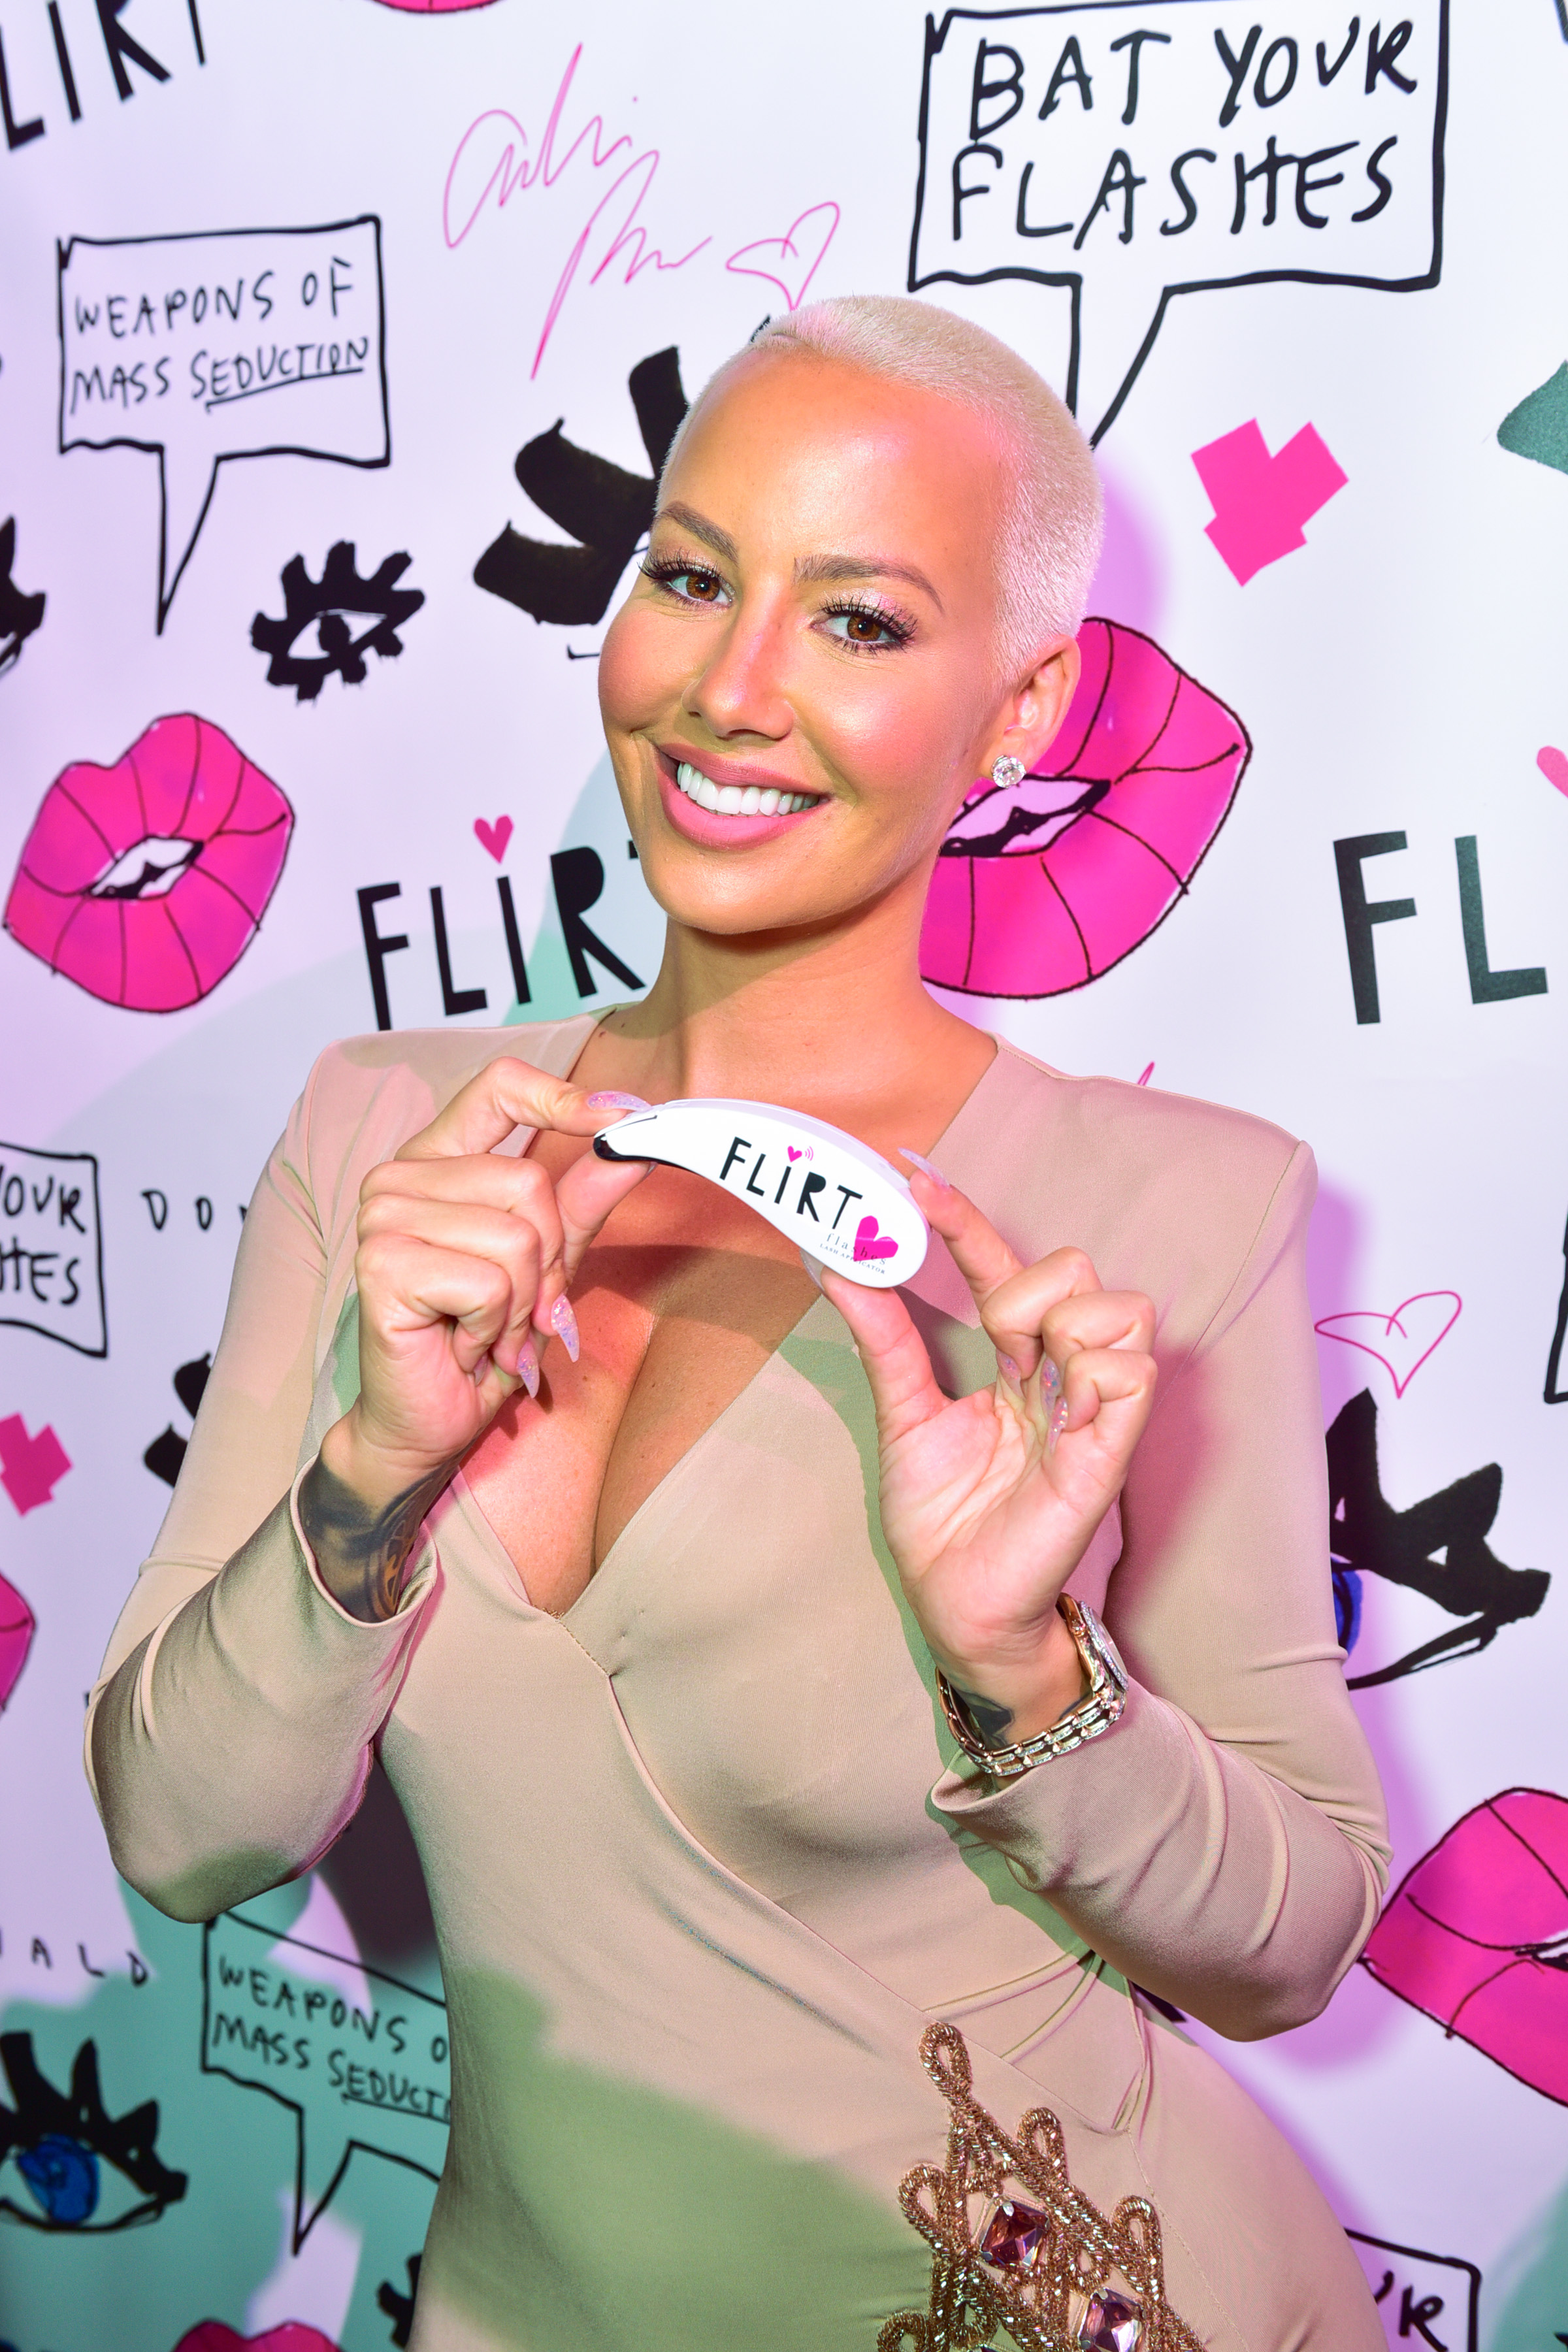 Donald Robertson & John Demsey Celebrate the Launch of Flirt Cosmetics with Amber Rose